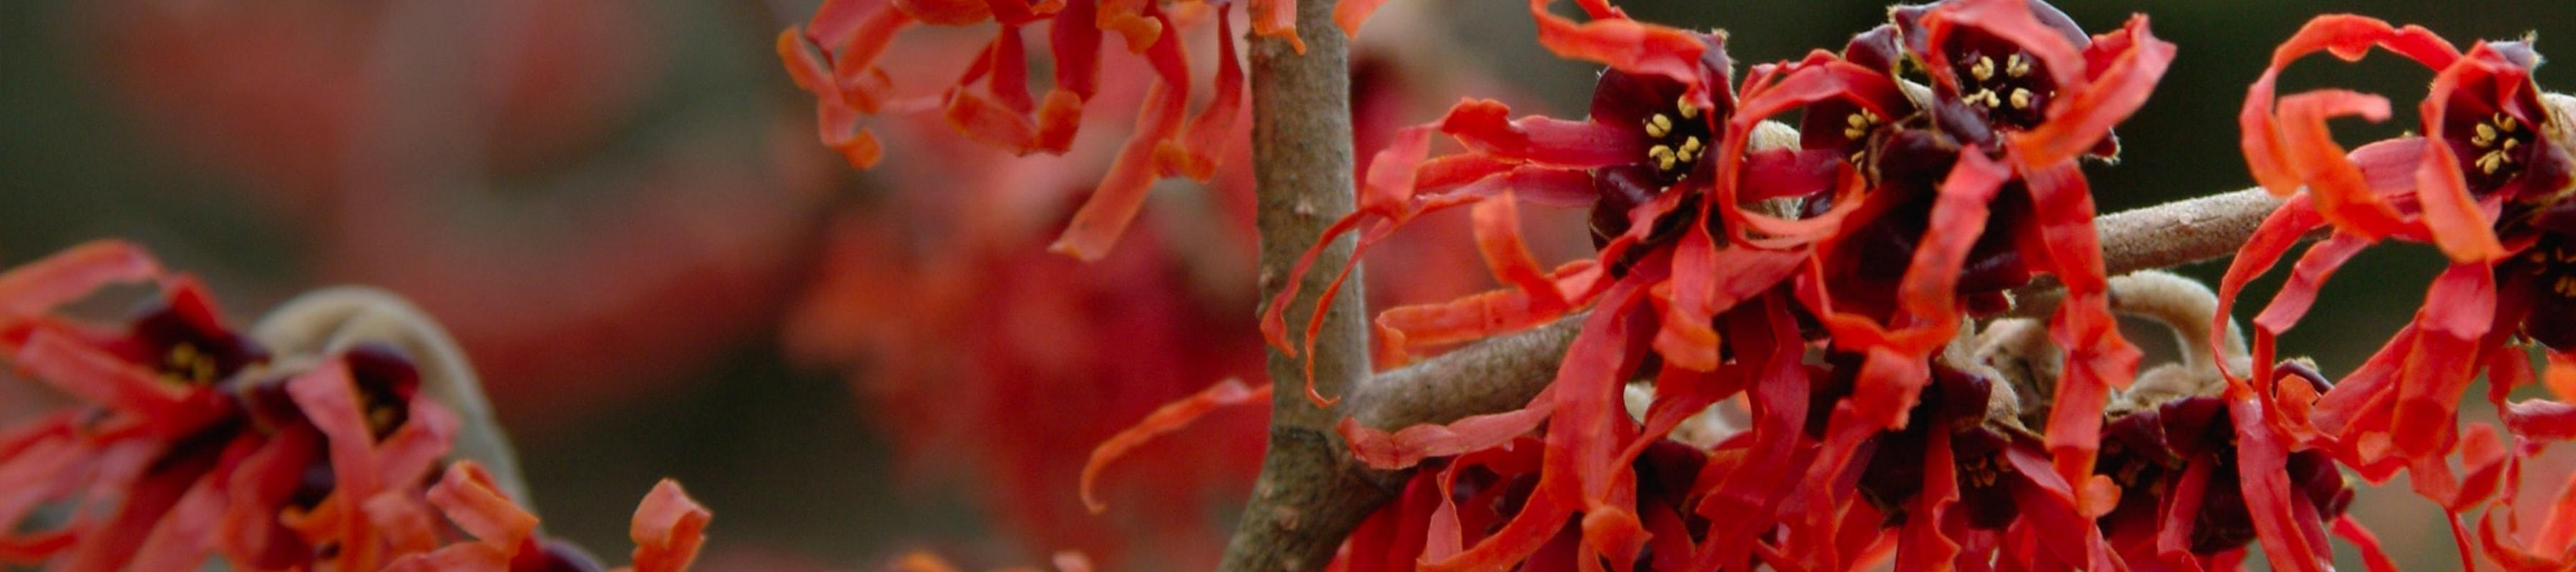 Bright red witch hazel